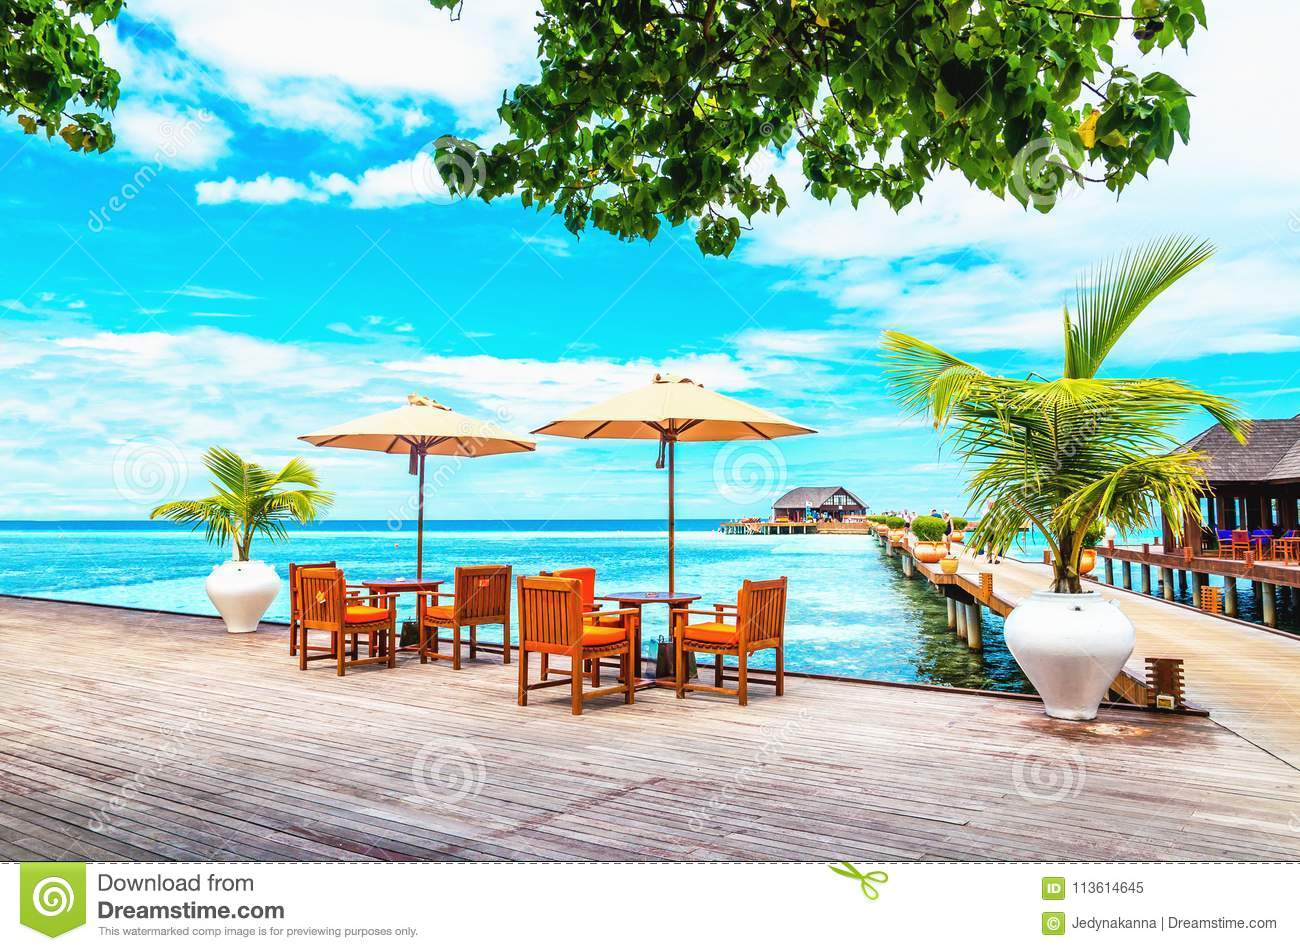 Restaurant with sun umbrellas on a wooden pier against the azure water of the ocean